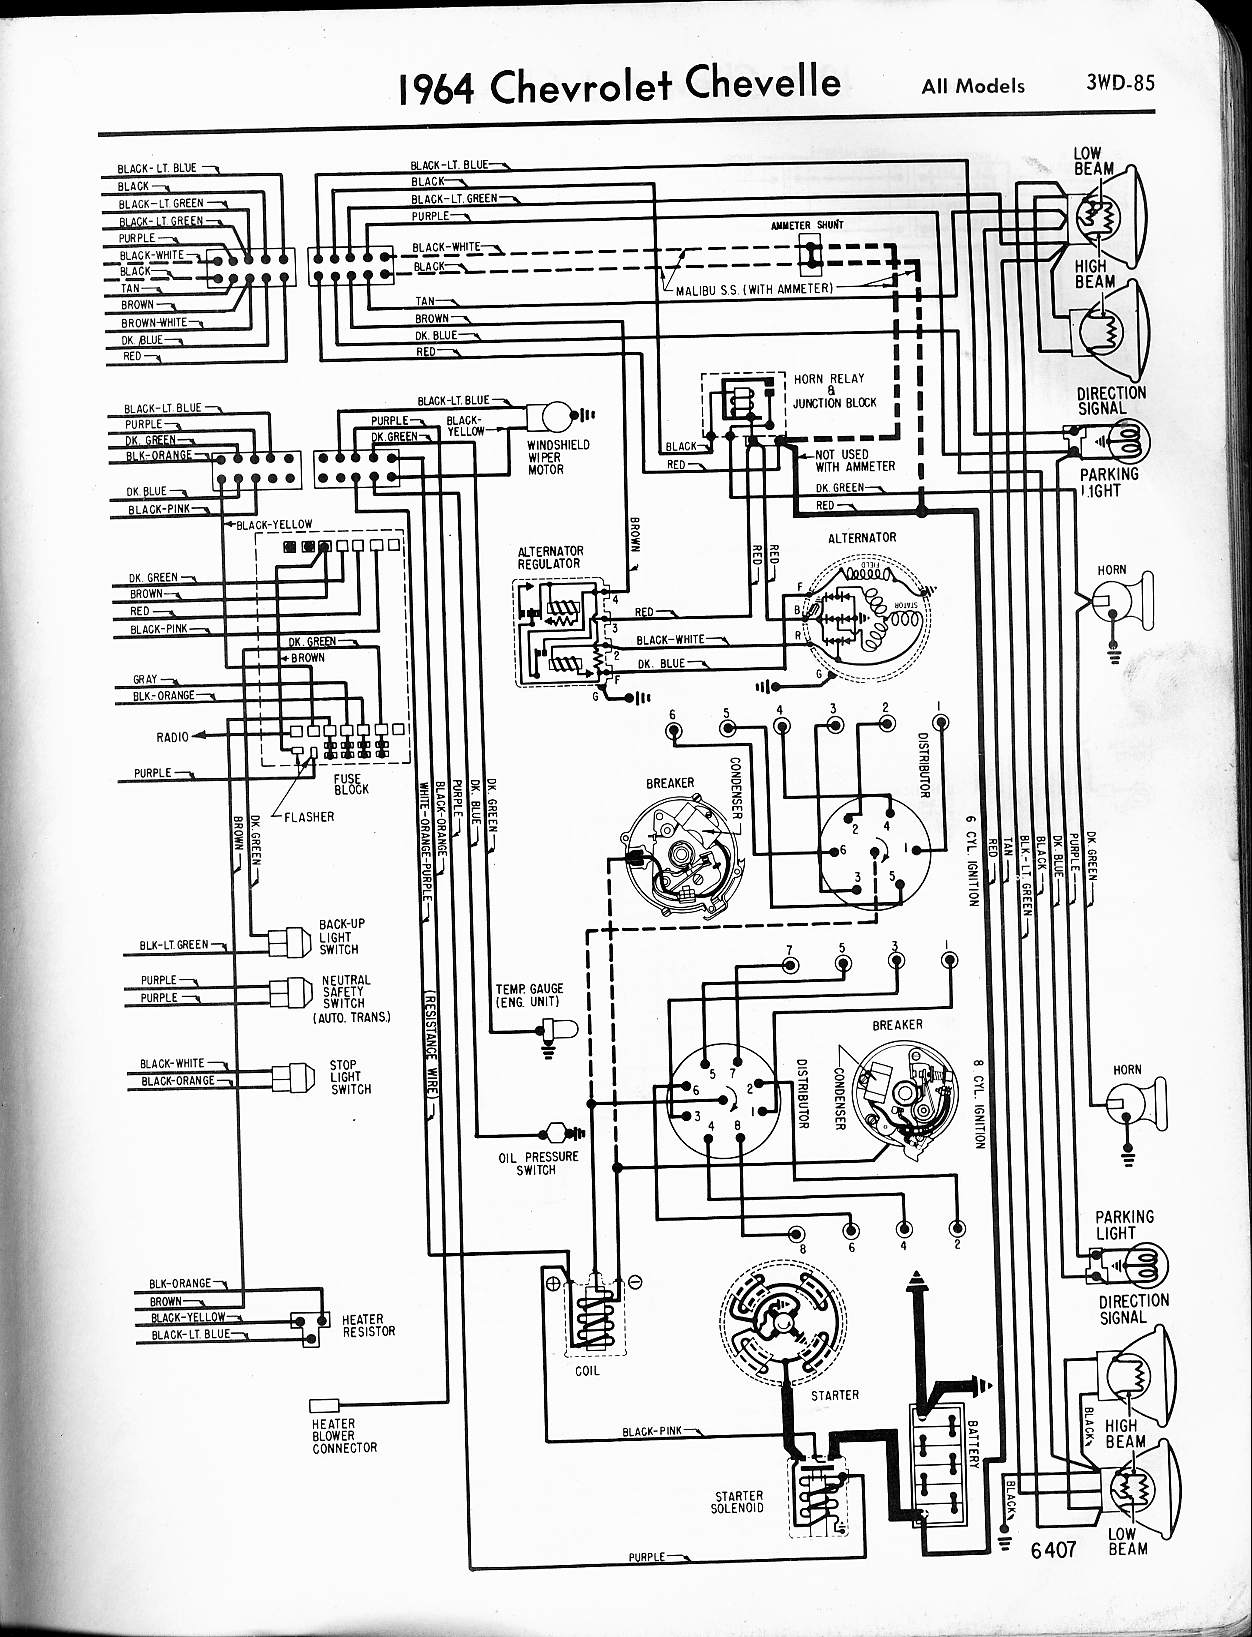 65 El Camino Wiring Diagram Free For You Opel Manta 64 Alternator Chevelle Tech 1987 1965